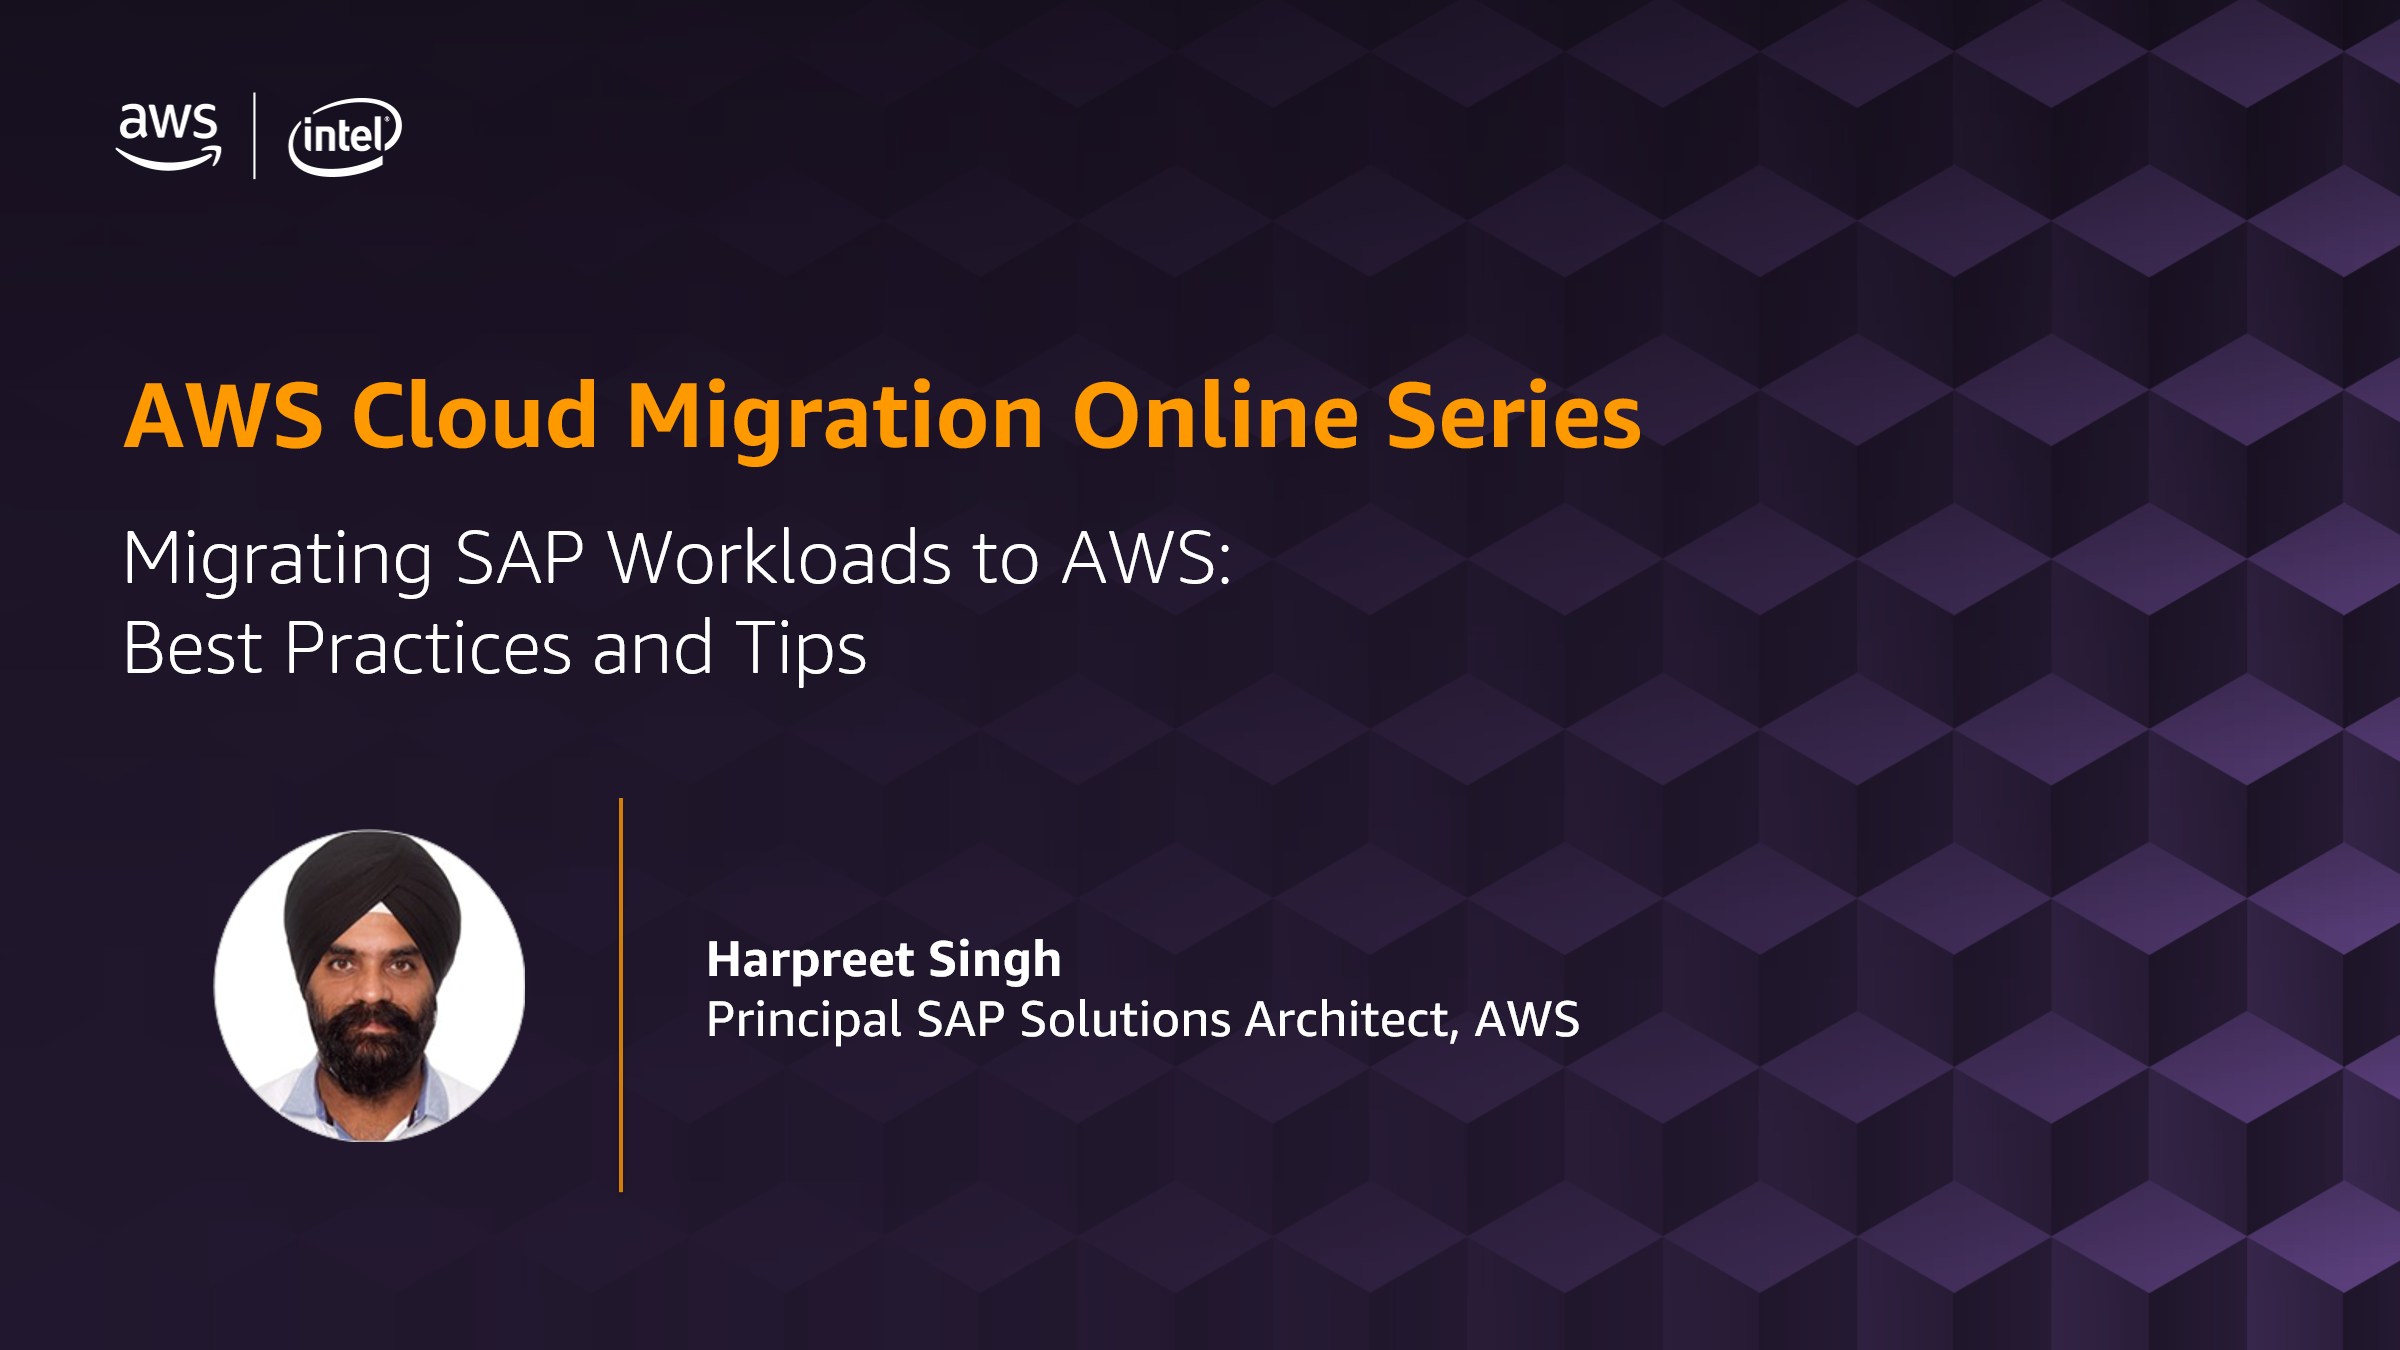 Migration Online Series: Migrating SAP Workloads to AWS - Best Practices and Tips